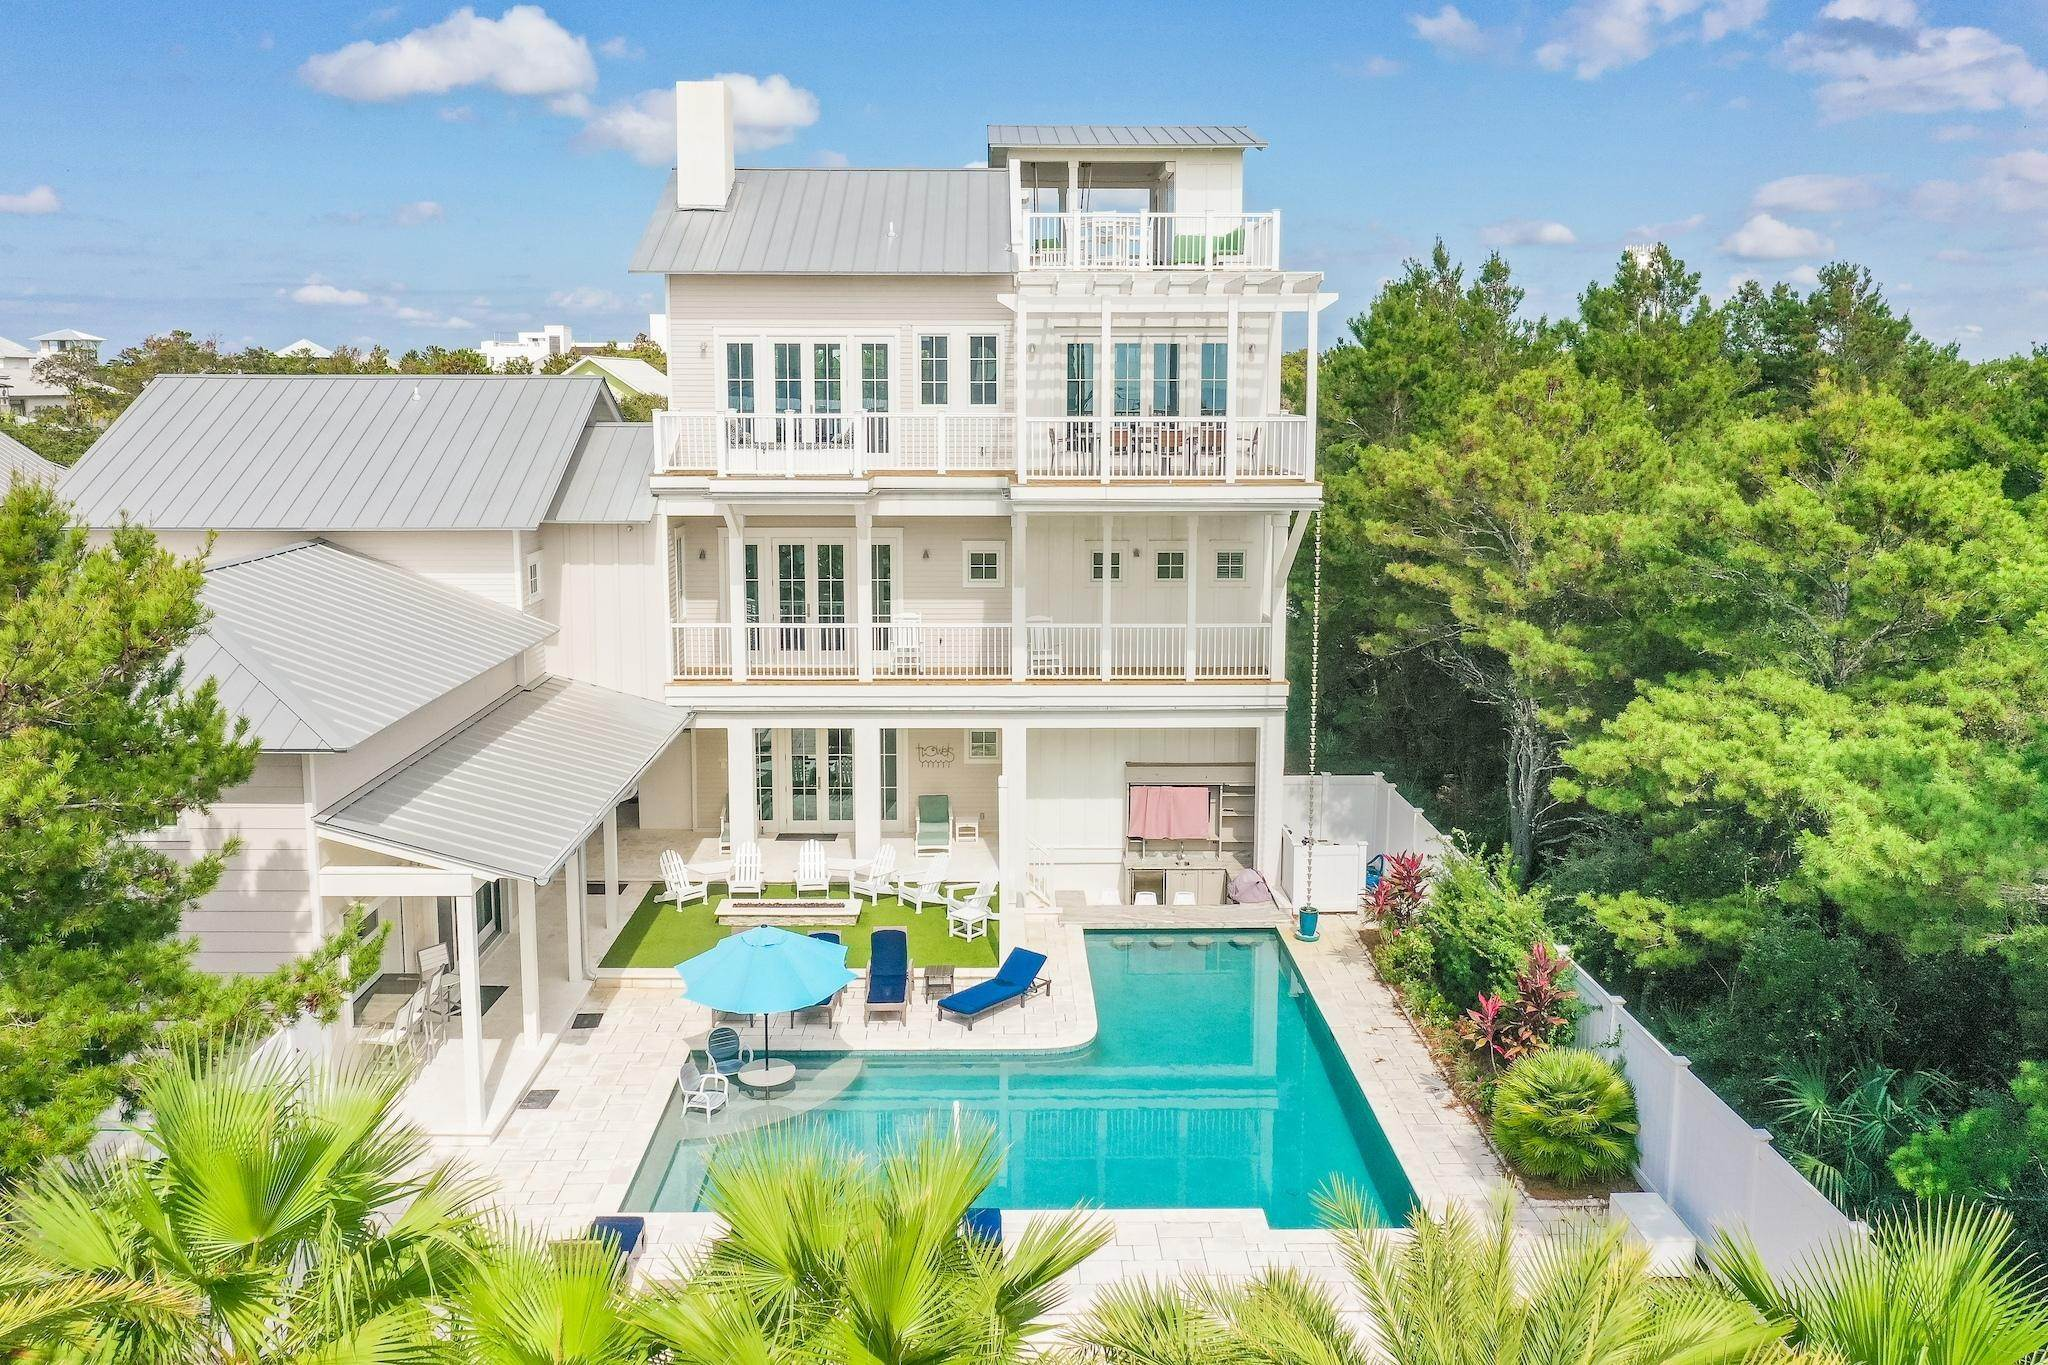 Single Family Home for Sale at 325 Walton Rose Lane Inlet Beach, Florida,32461 United States